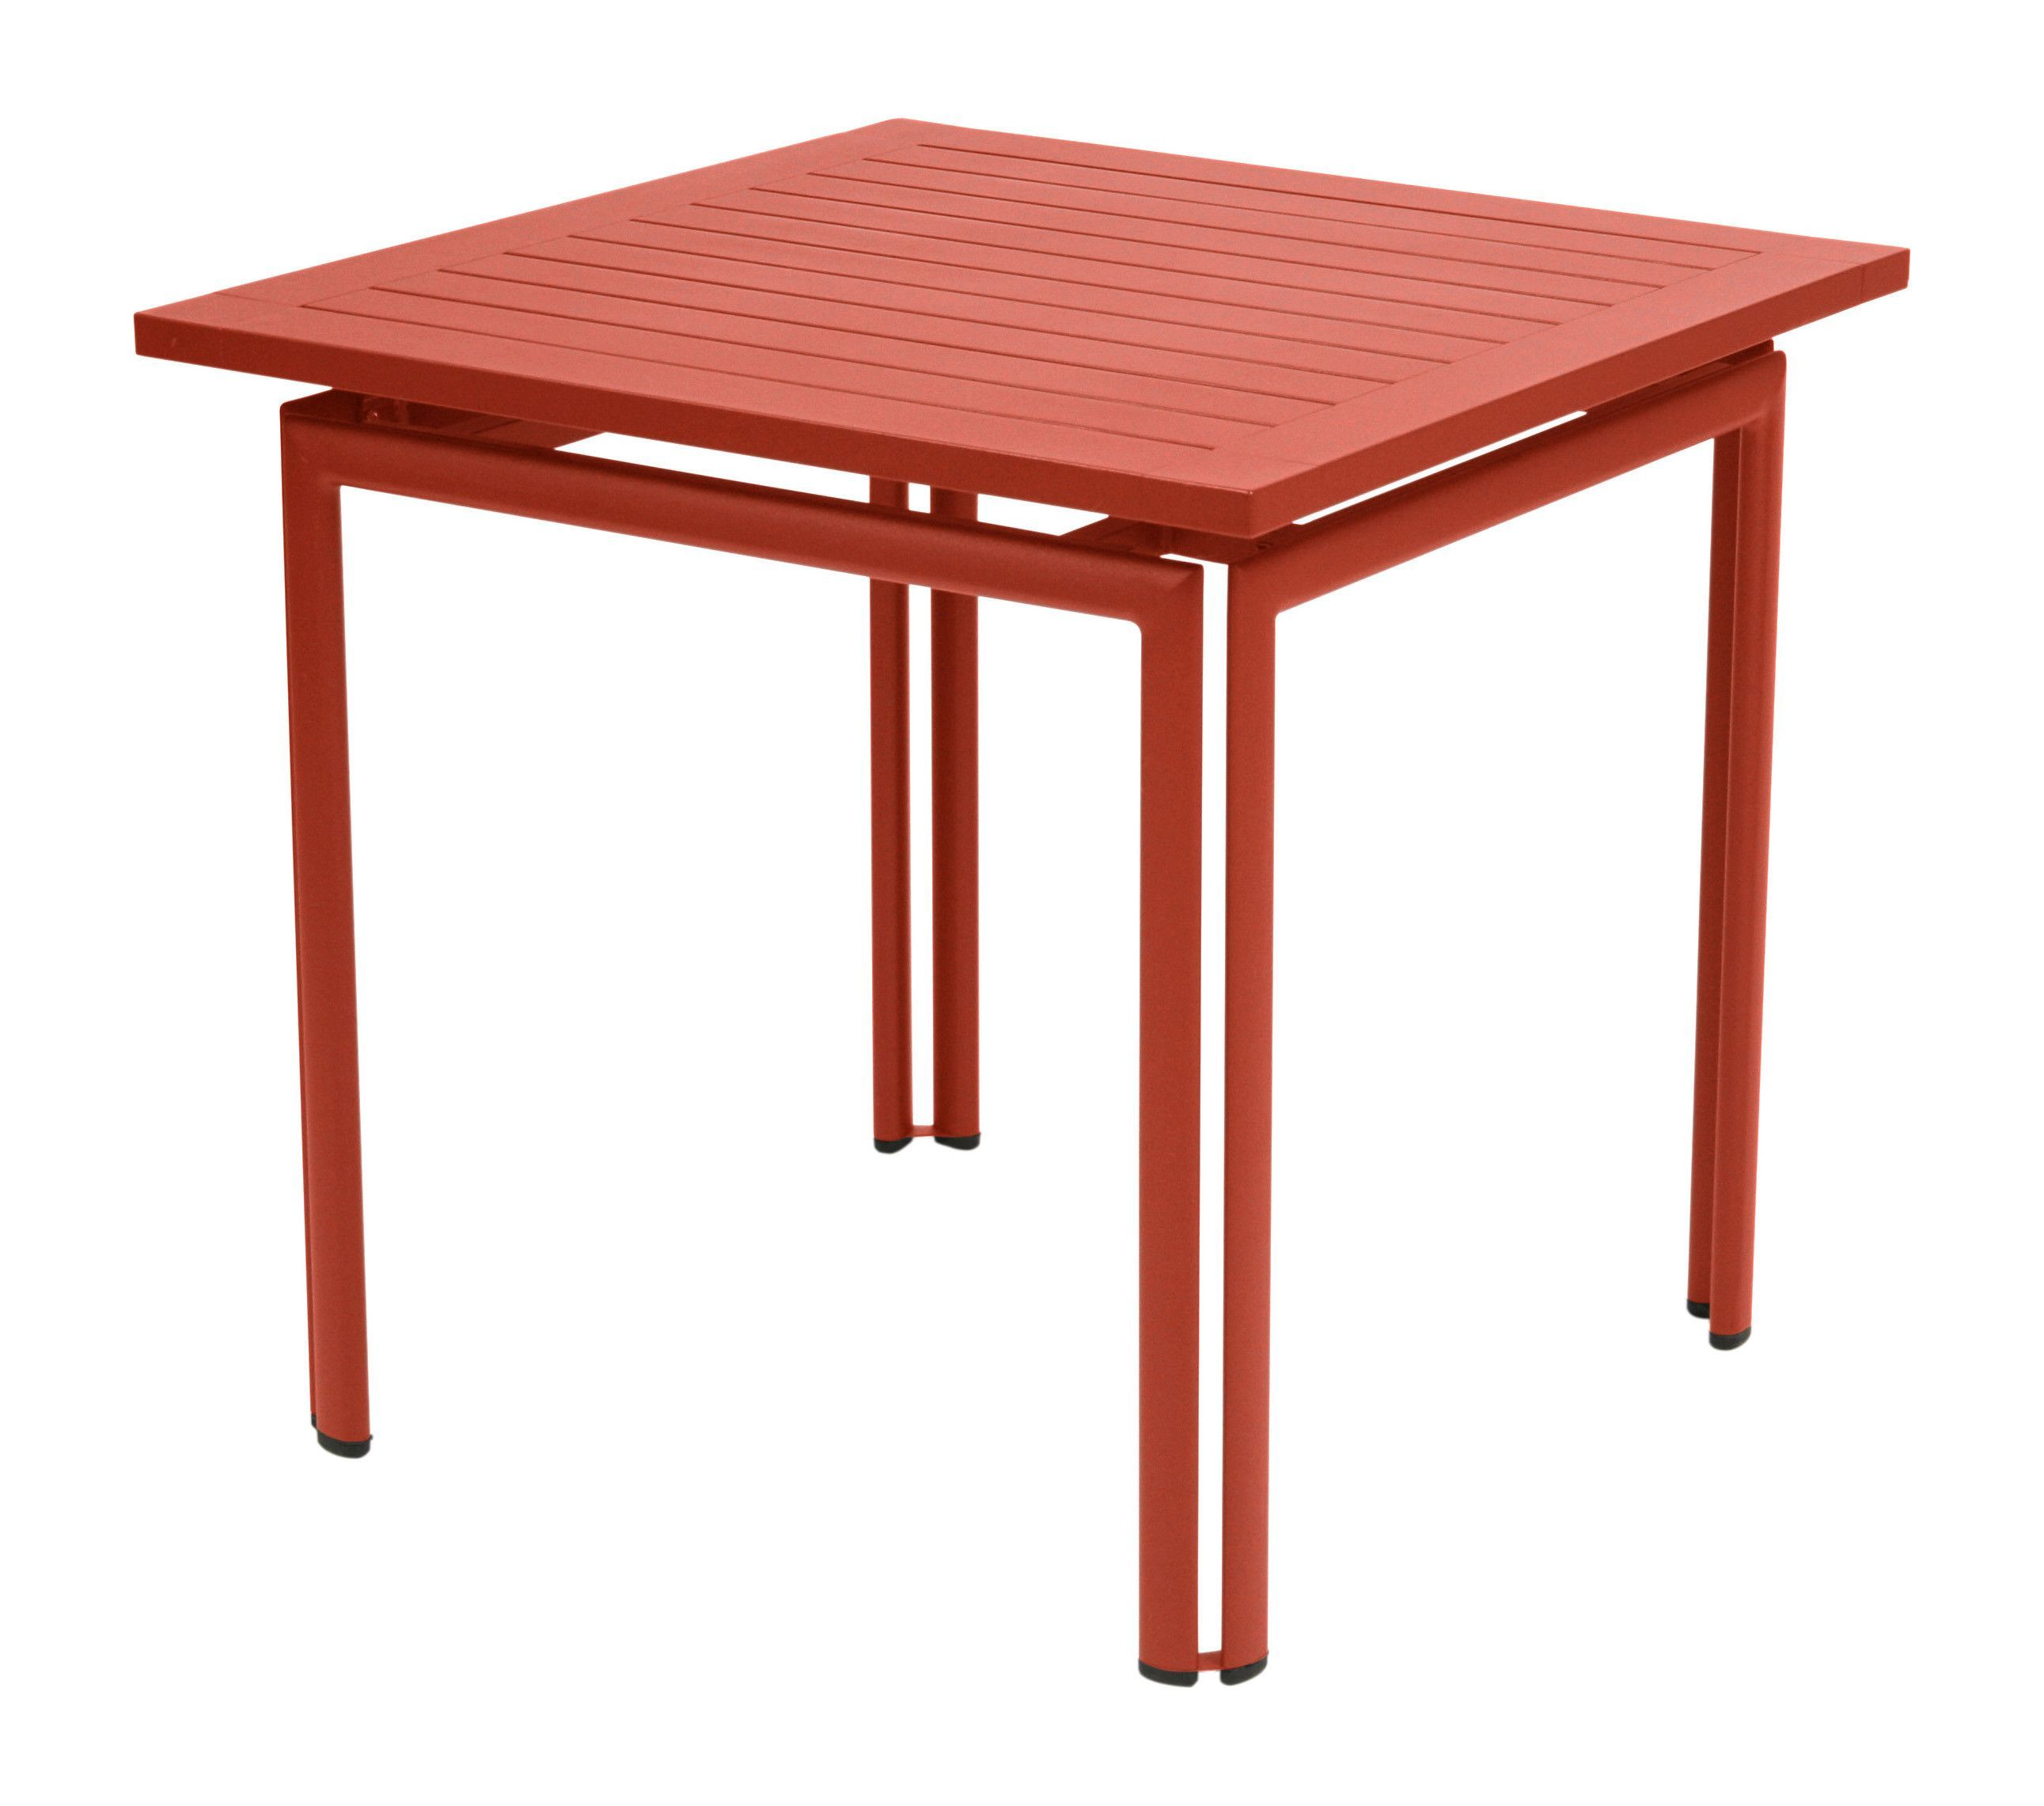 32 X32 Costa Table Outdoor Dining Table Modern Outdoor Dining Table Bistro Furniture